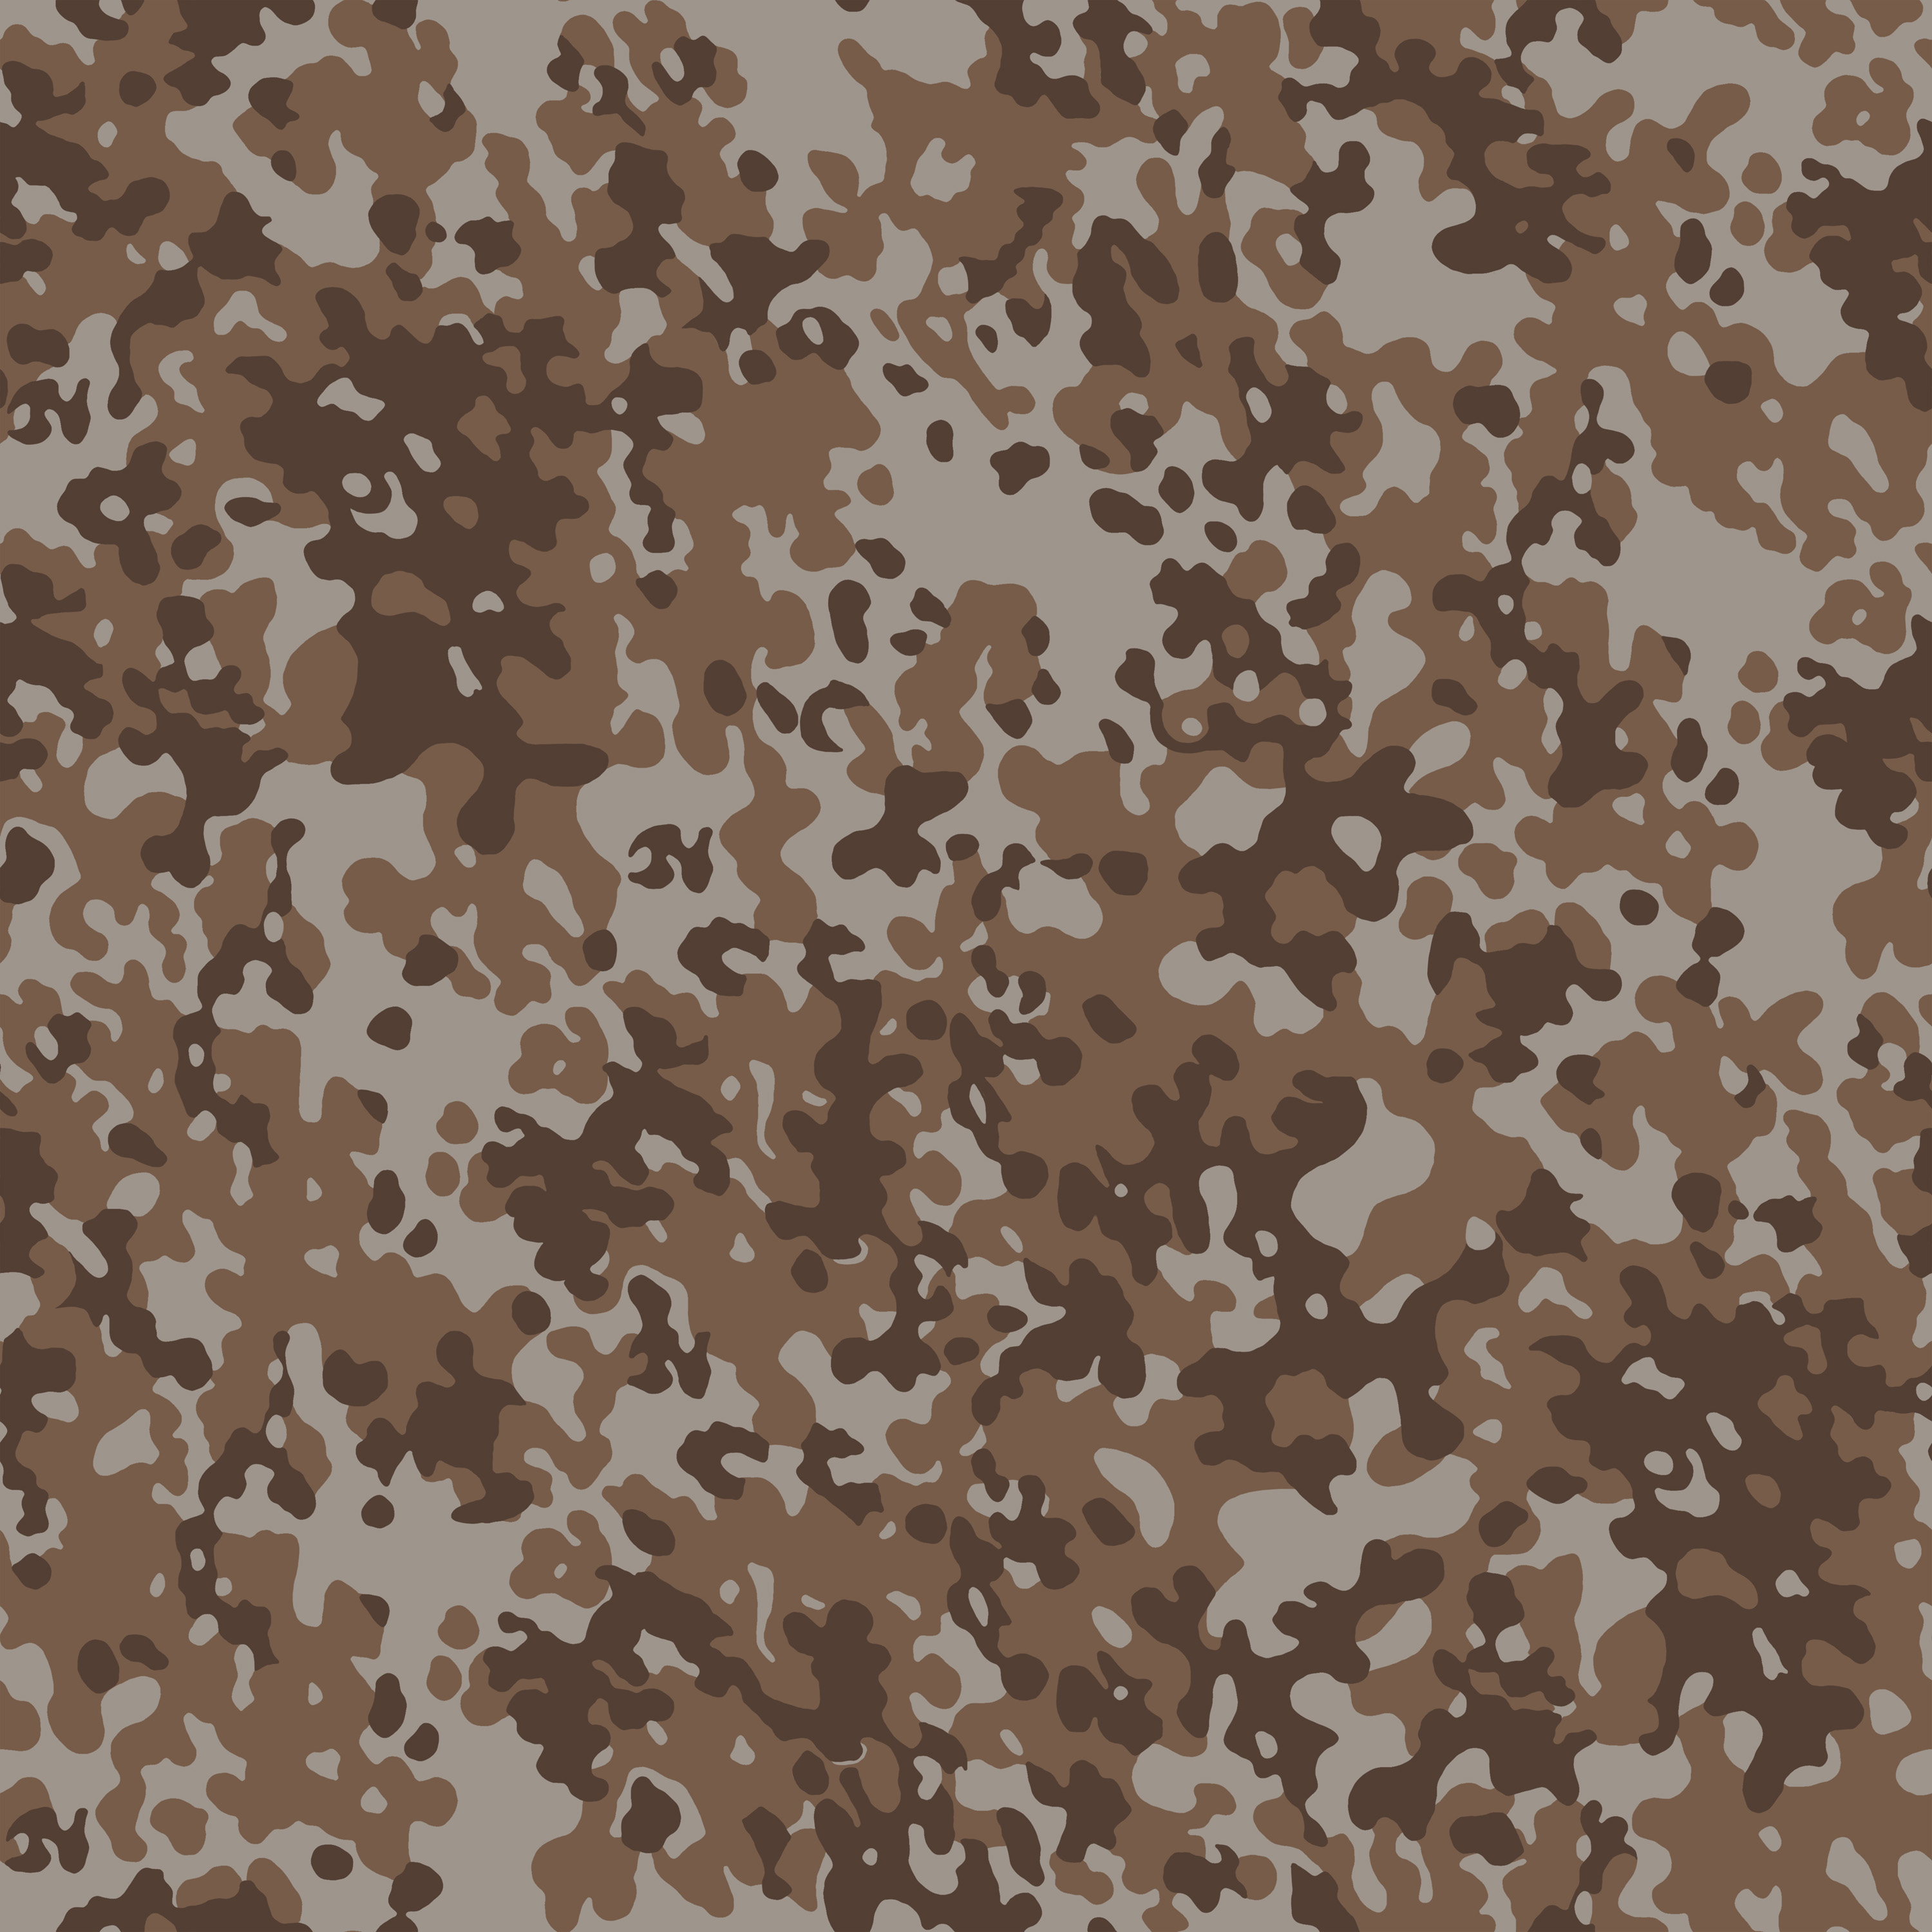 camouflage texture camouflage usa